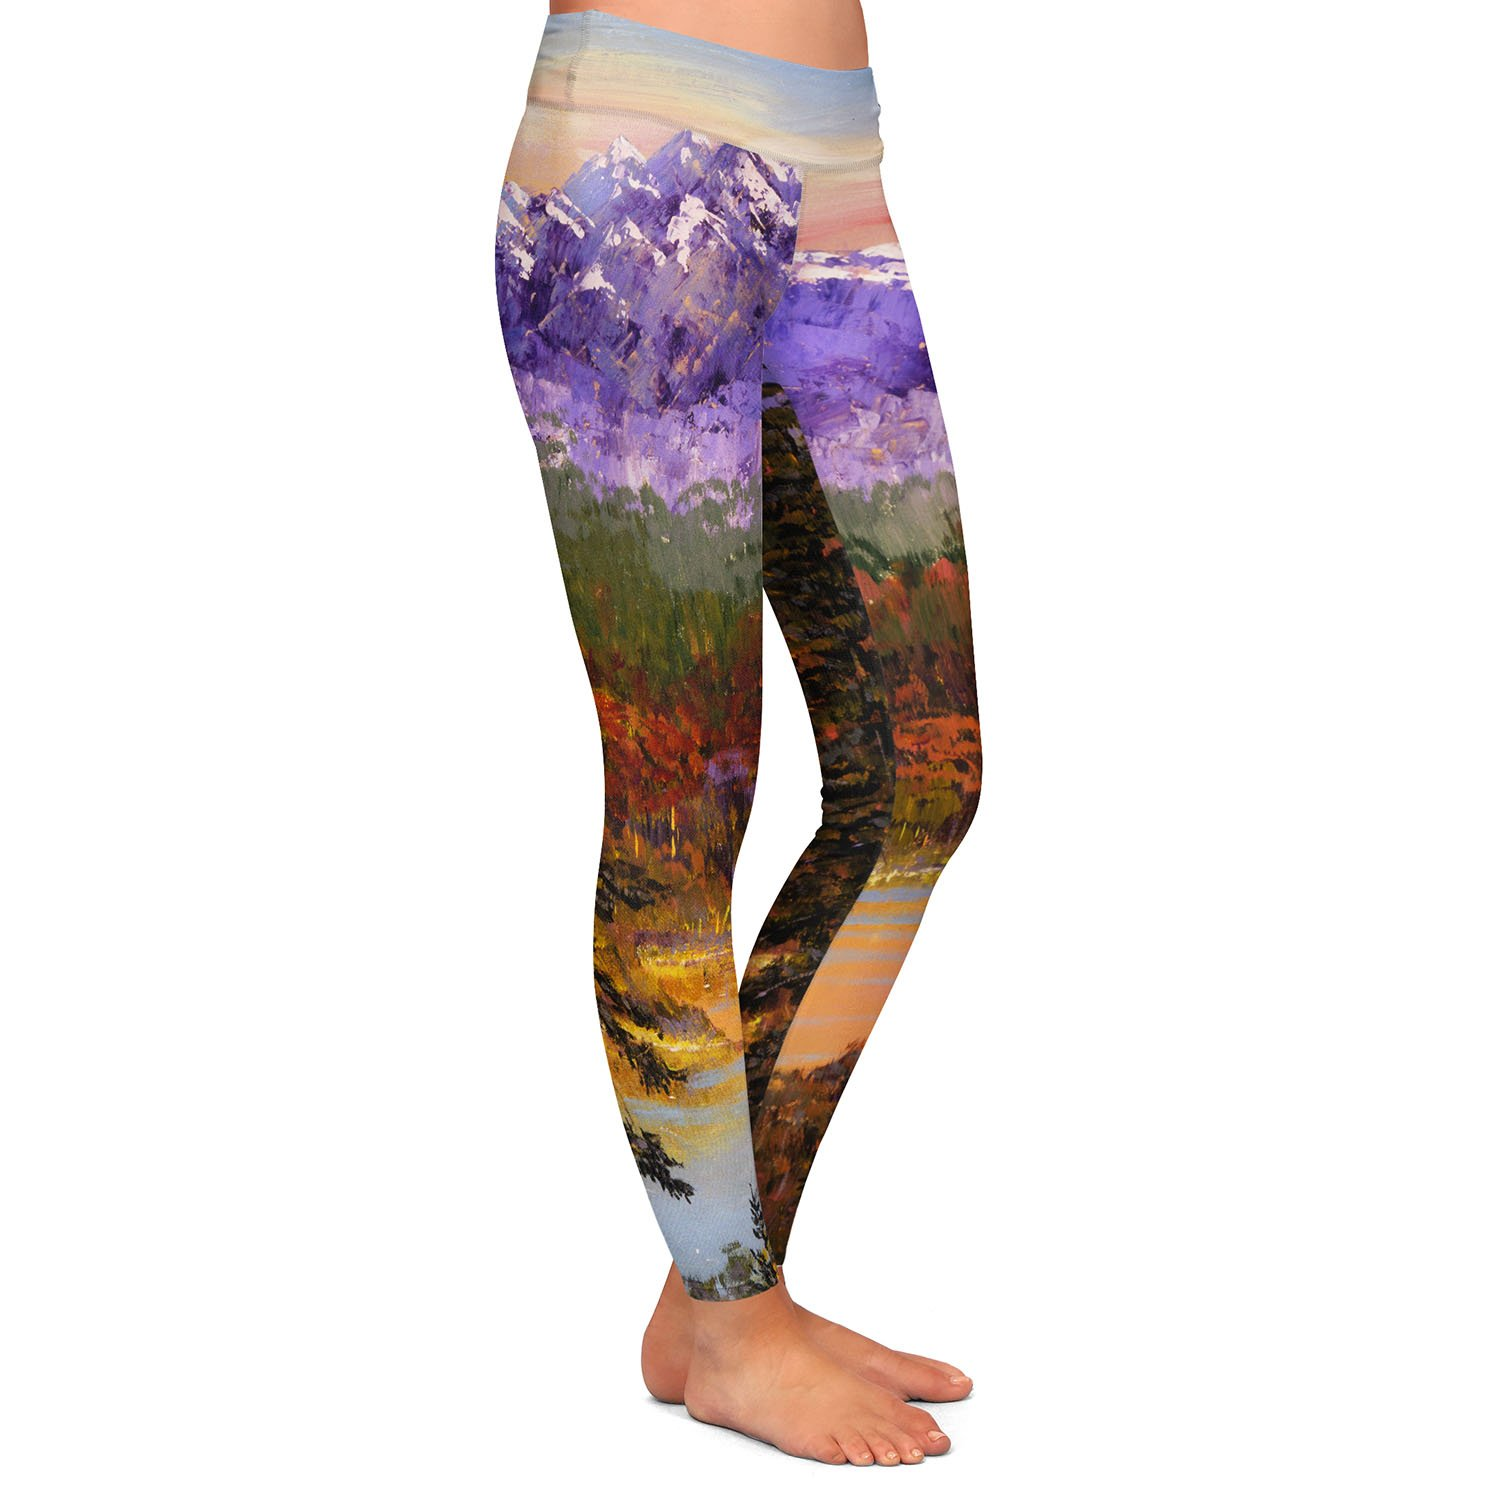 Silent Vision Athletic Yoga Leggings from DiaNoche Designs by David Lloyd Glover